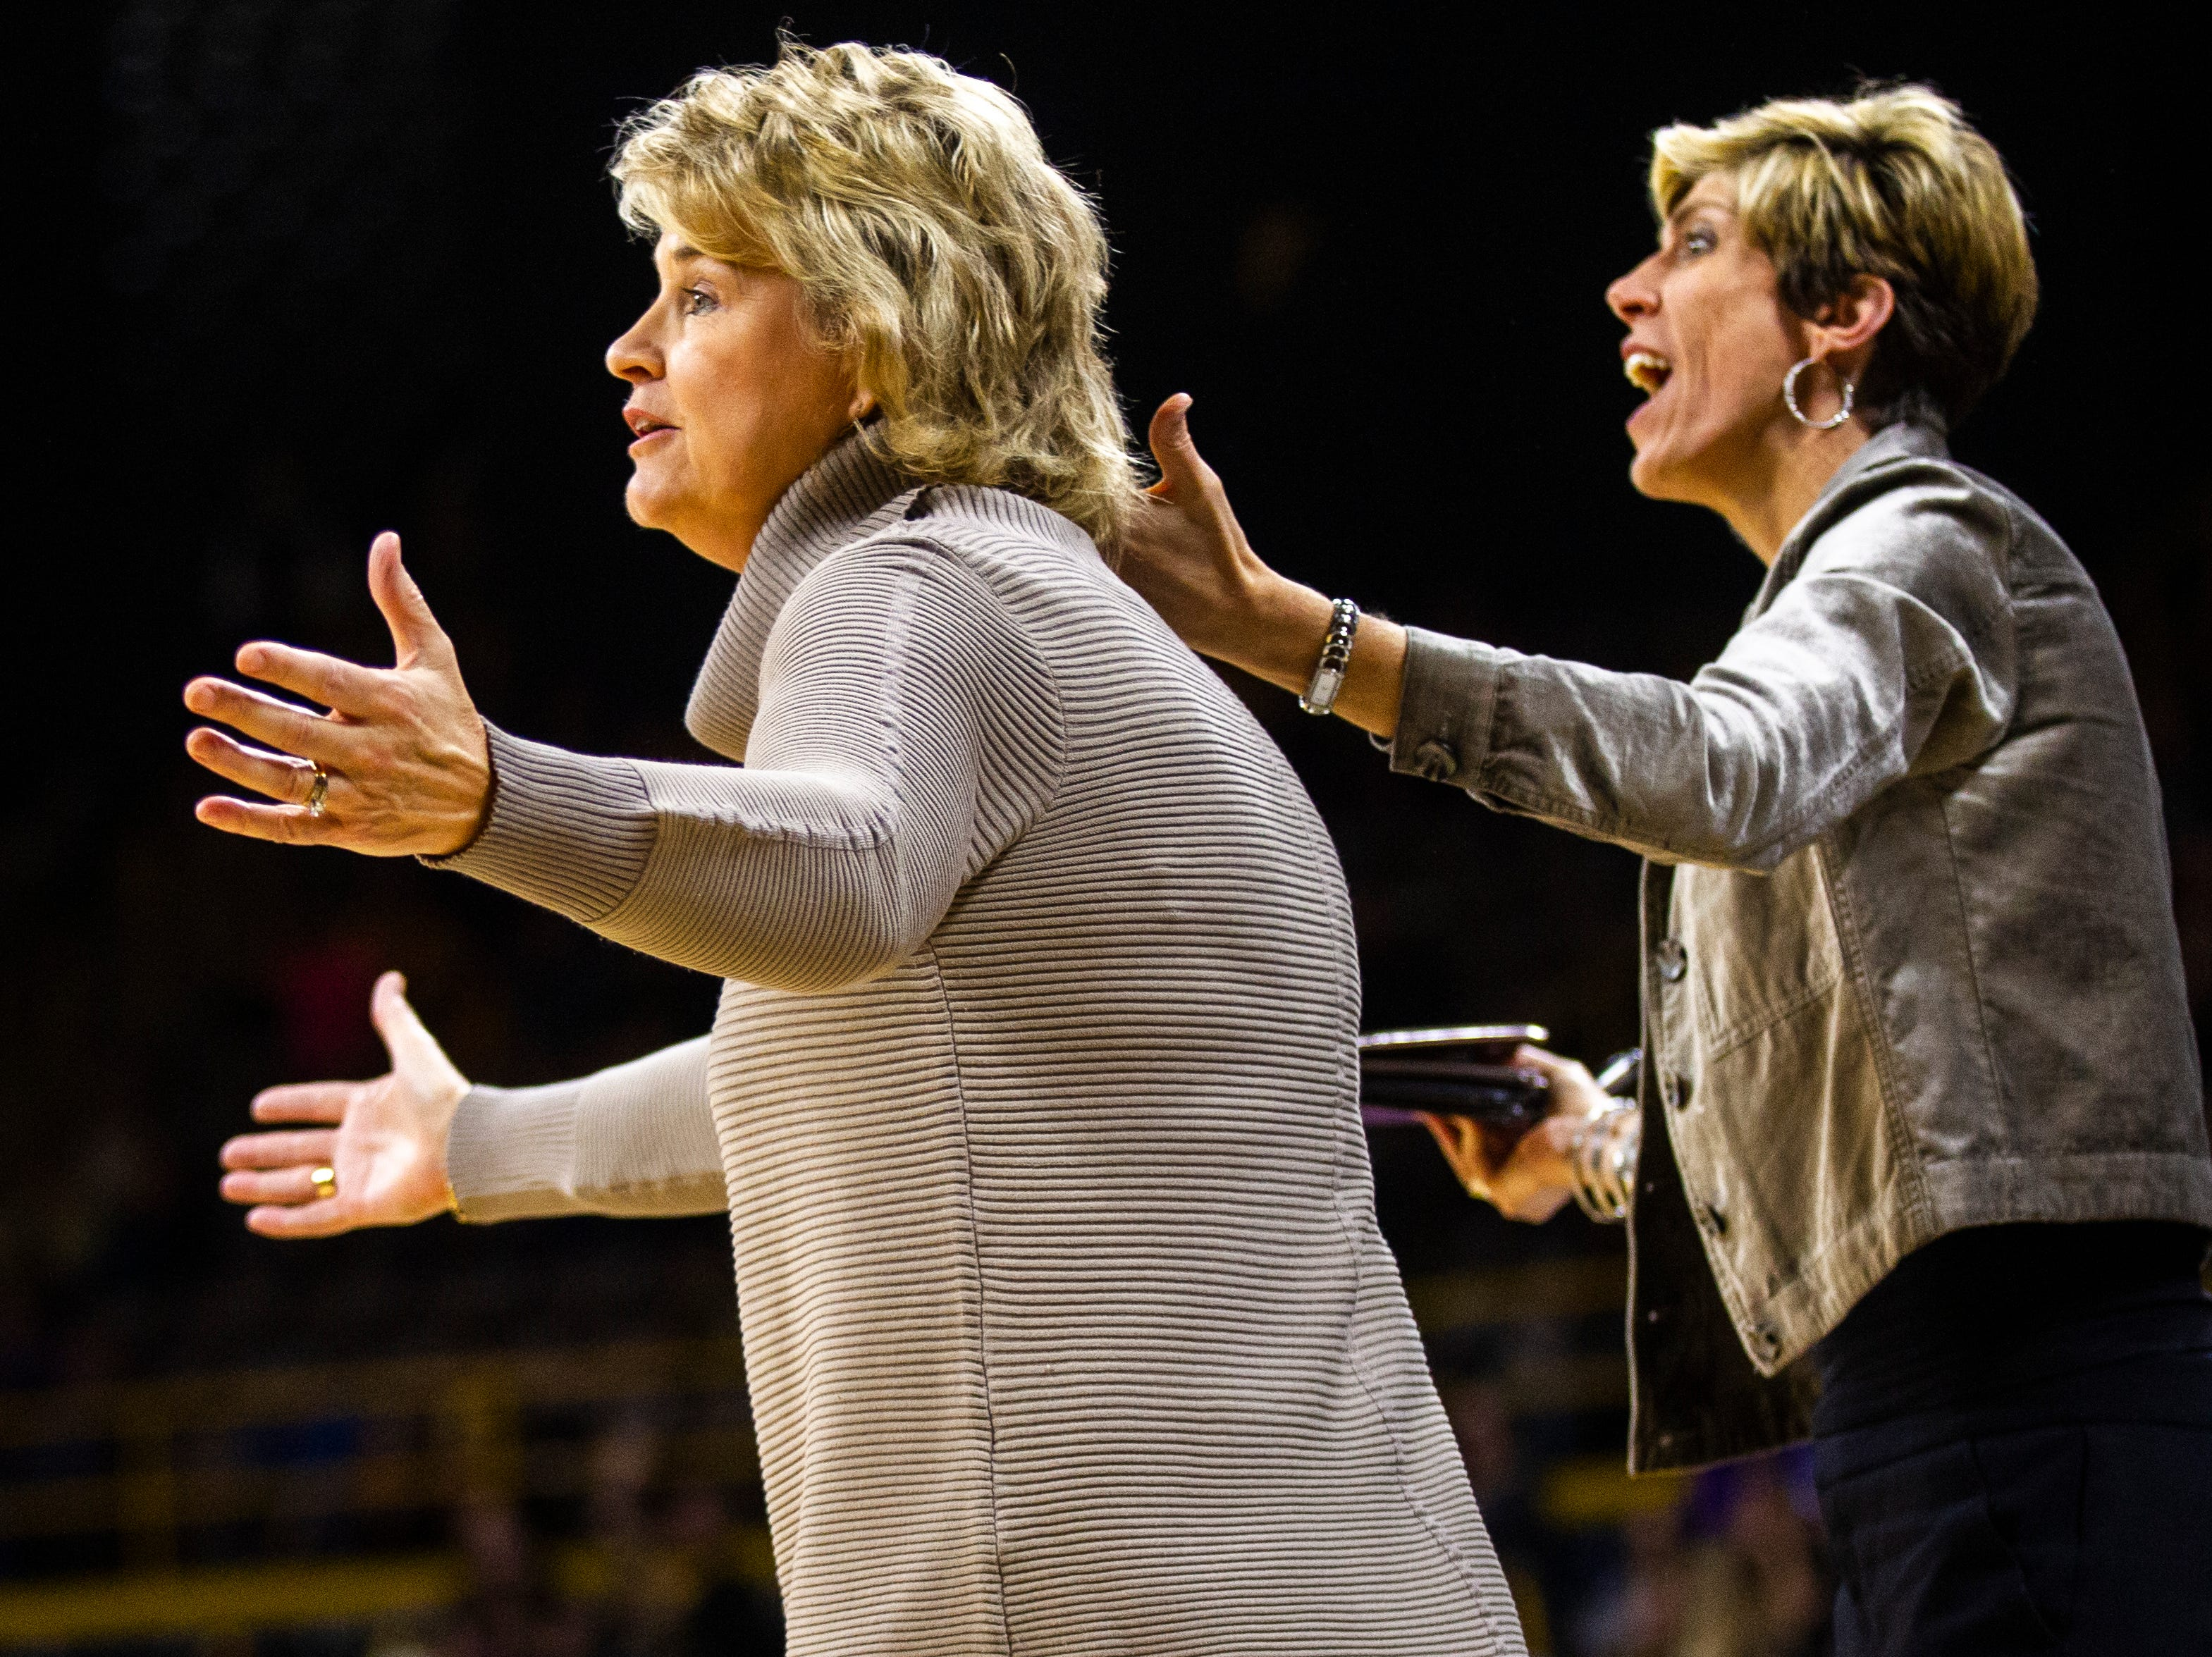 Iowa head coach Lisa Bluder, left, and associate Jan Jensen react to a call during a NCAA women's basketball game on Sunday, Dec. 16, 2018, at Carver-Hawkeye Arena in Iowa City.